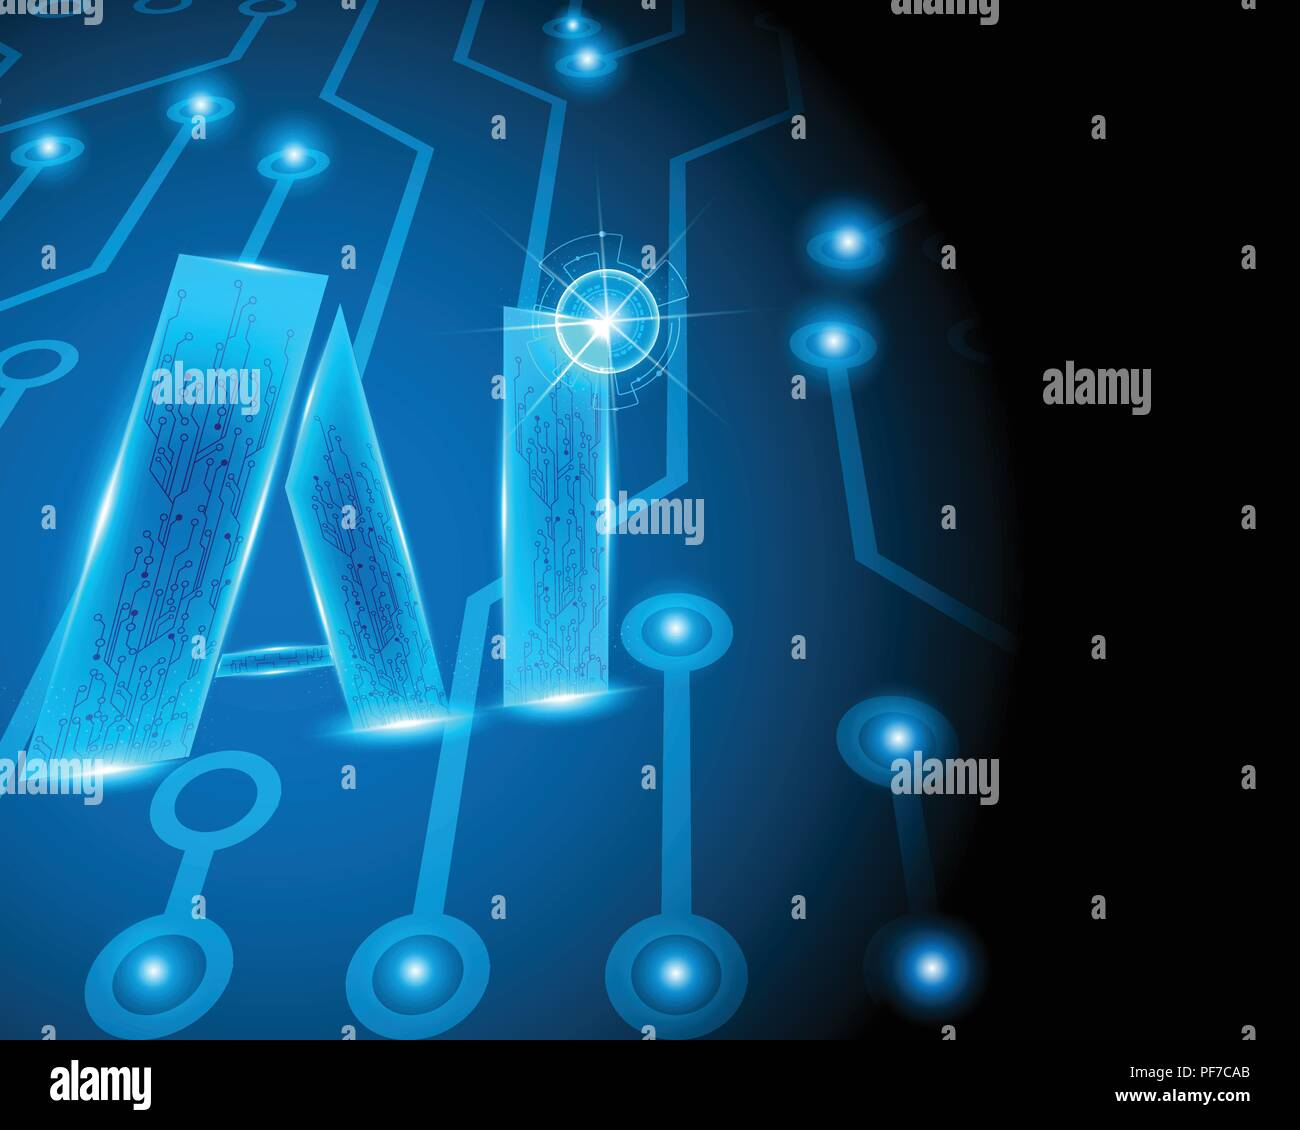 Ai Letter Digital Artificial Intelligence And Big Data Machine Electric Circuit Symbols Learning Business System With Conceptvector Illustration Eps10